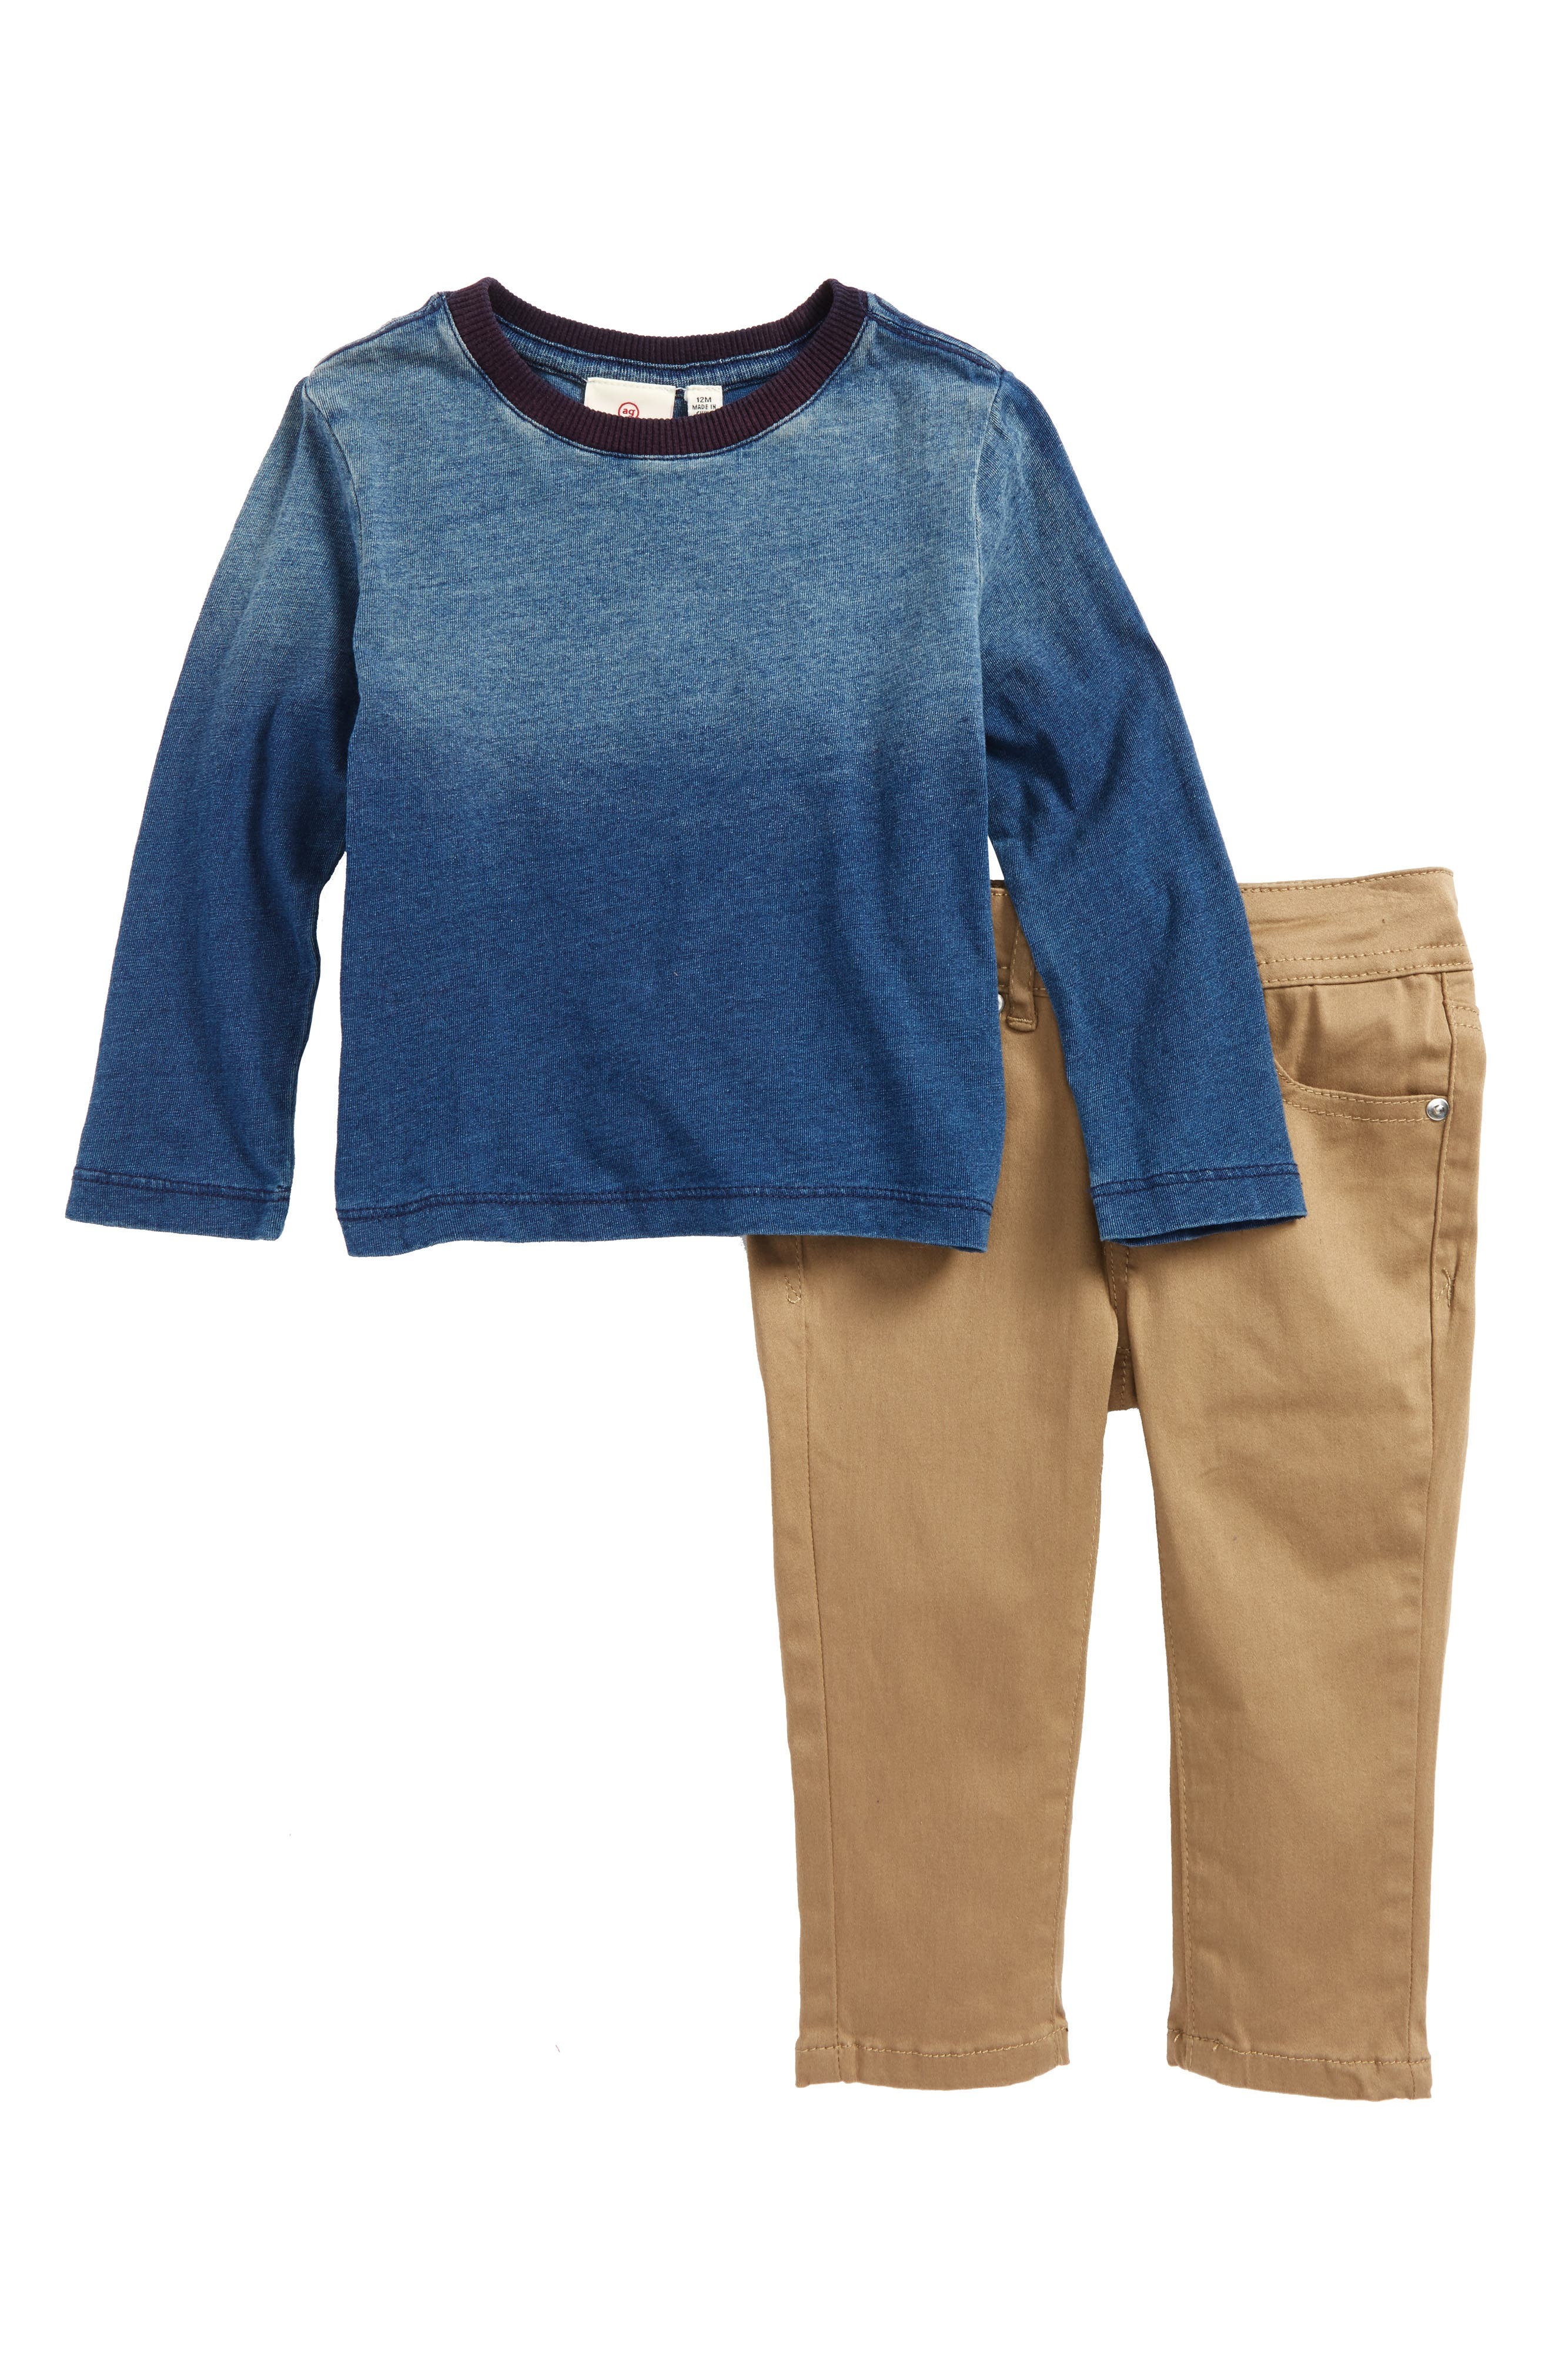 Alternate Image 1 Selected - ag adriano goldschmied kids T-Shirt & Pants Set (Baby Boys)